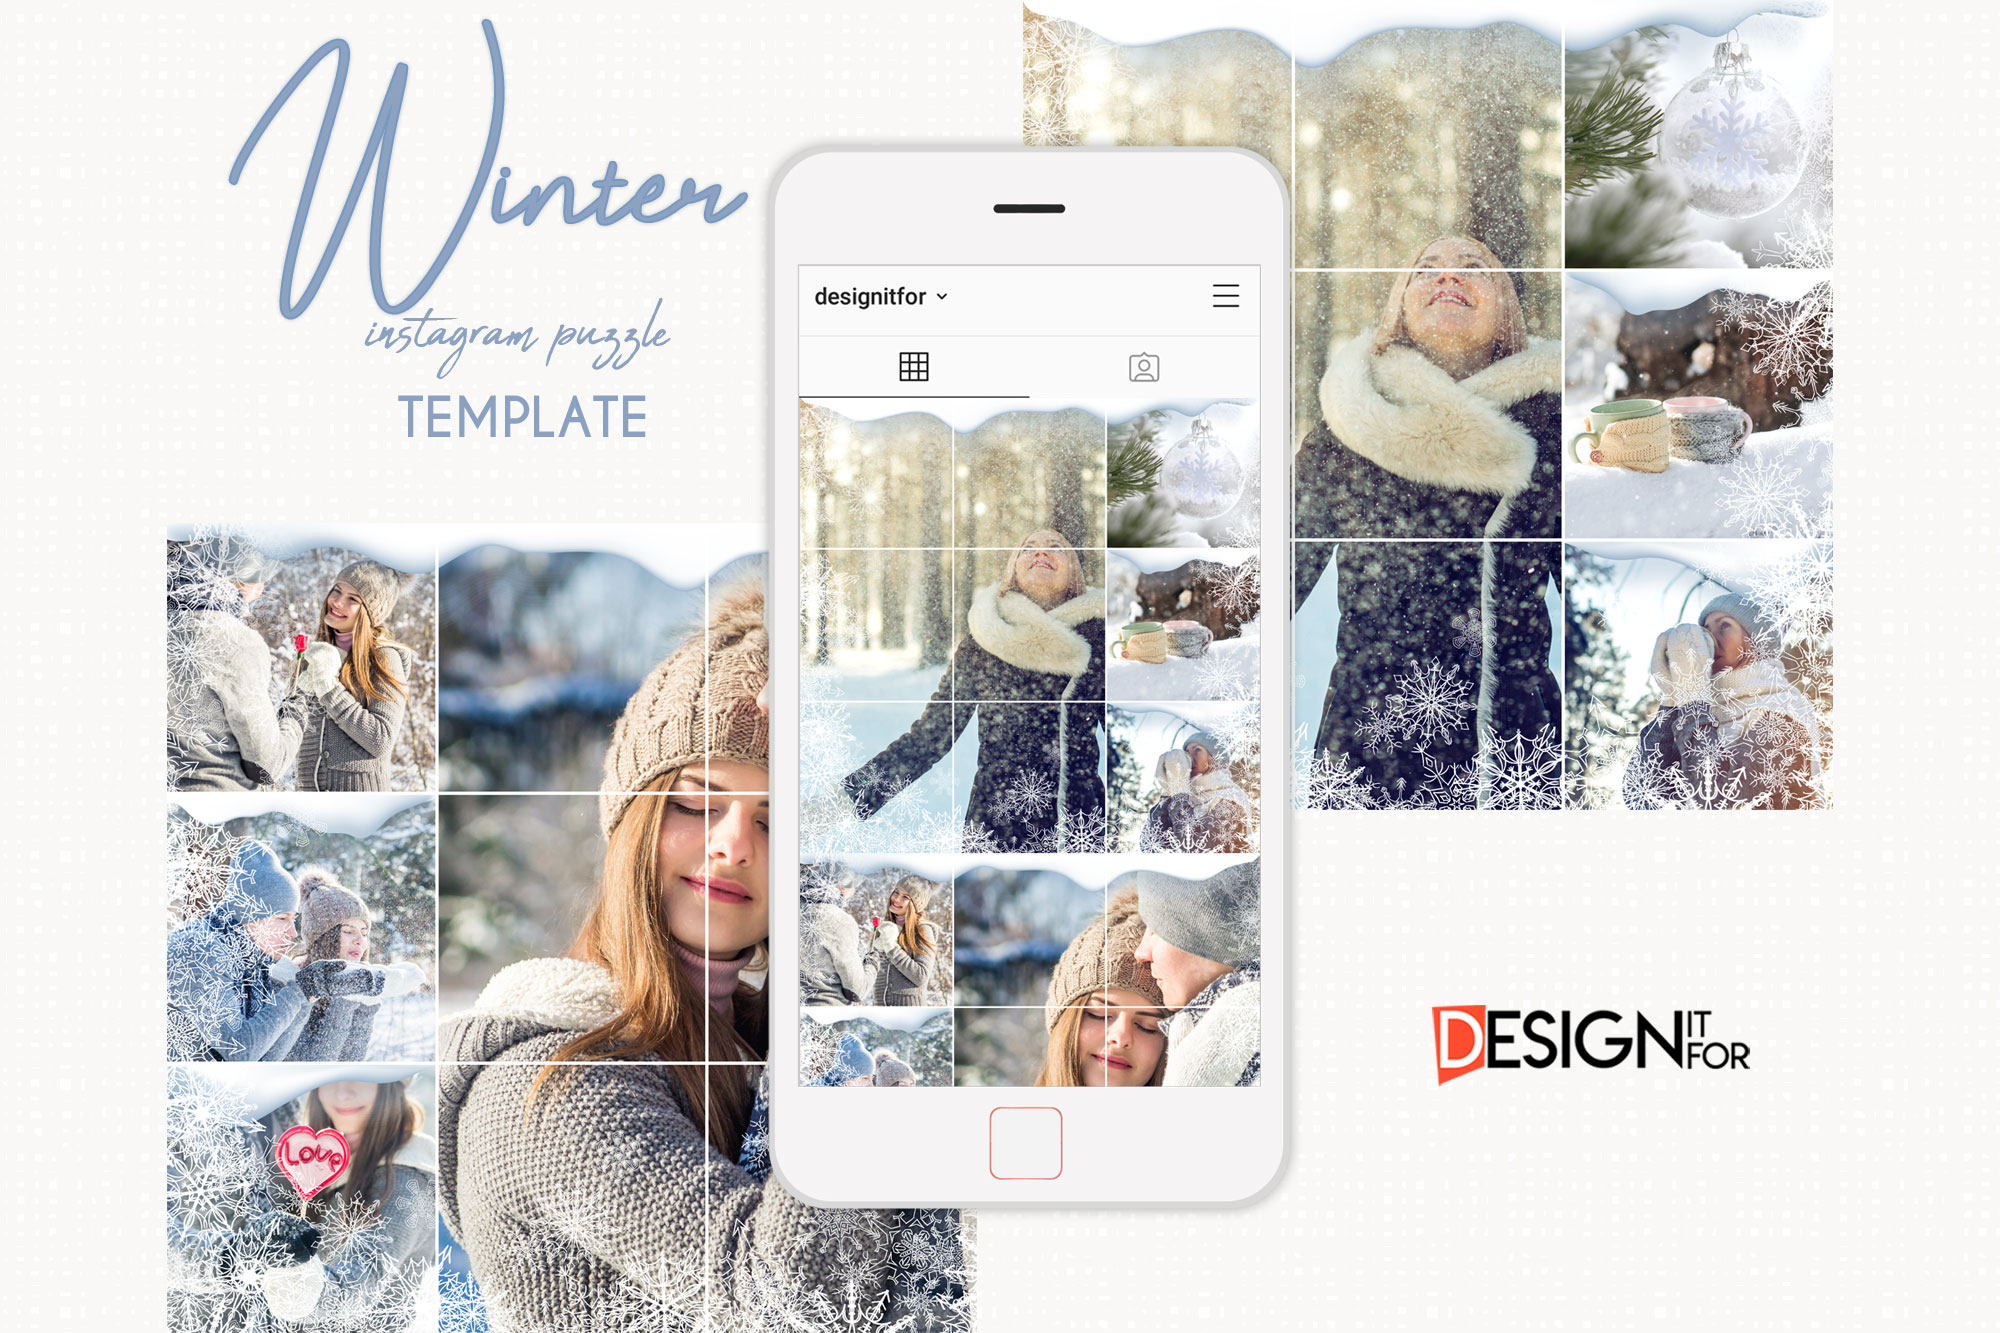 Winter Instagram Puzzle Template, Post Template example image 1